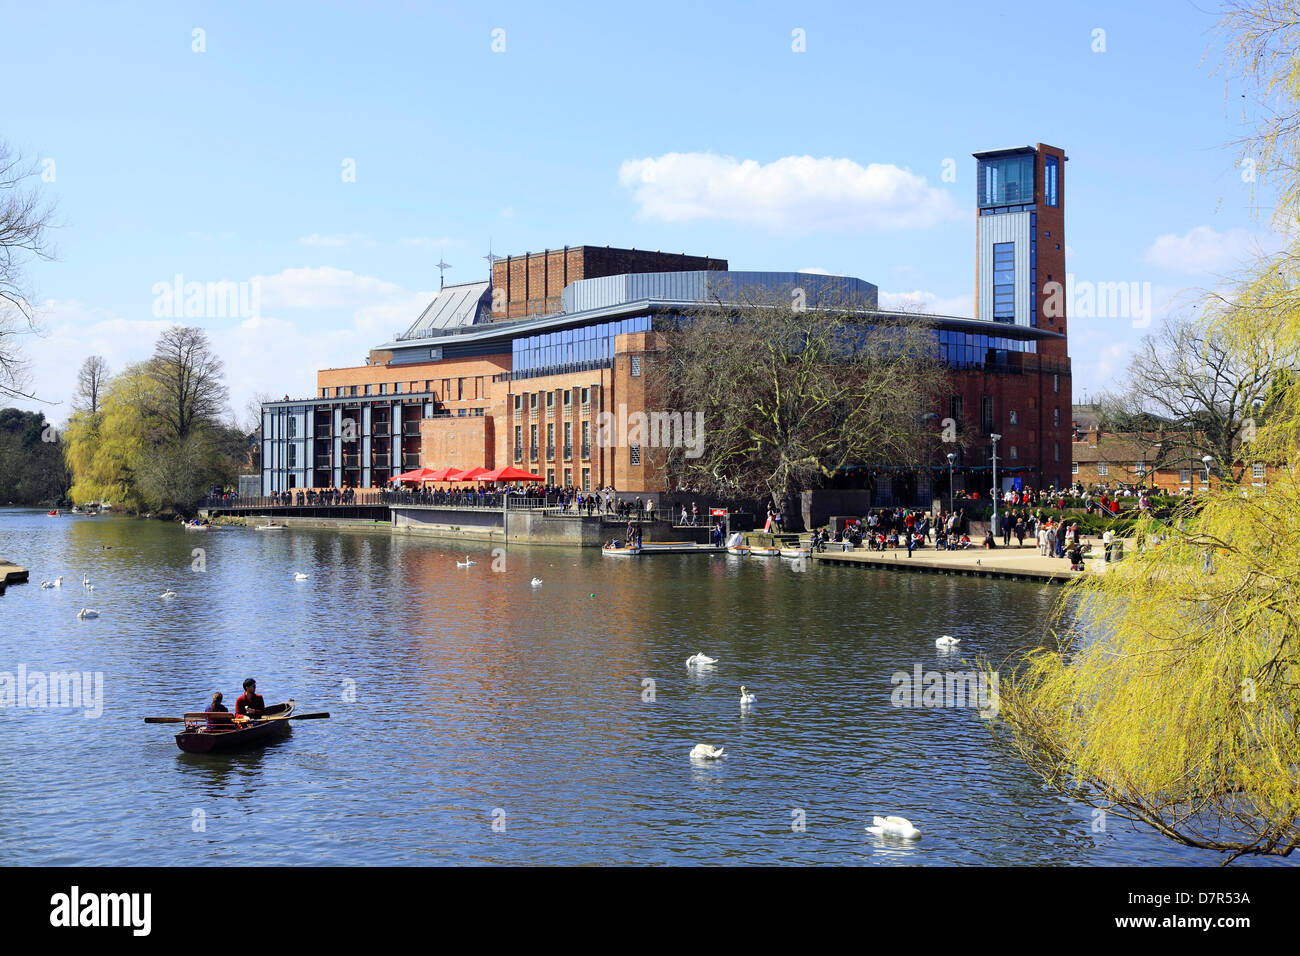 Royal Shakespeare Company Theatre at Stratford on Avon England. - Stock Image